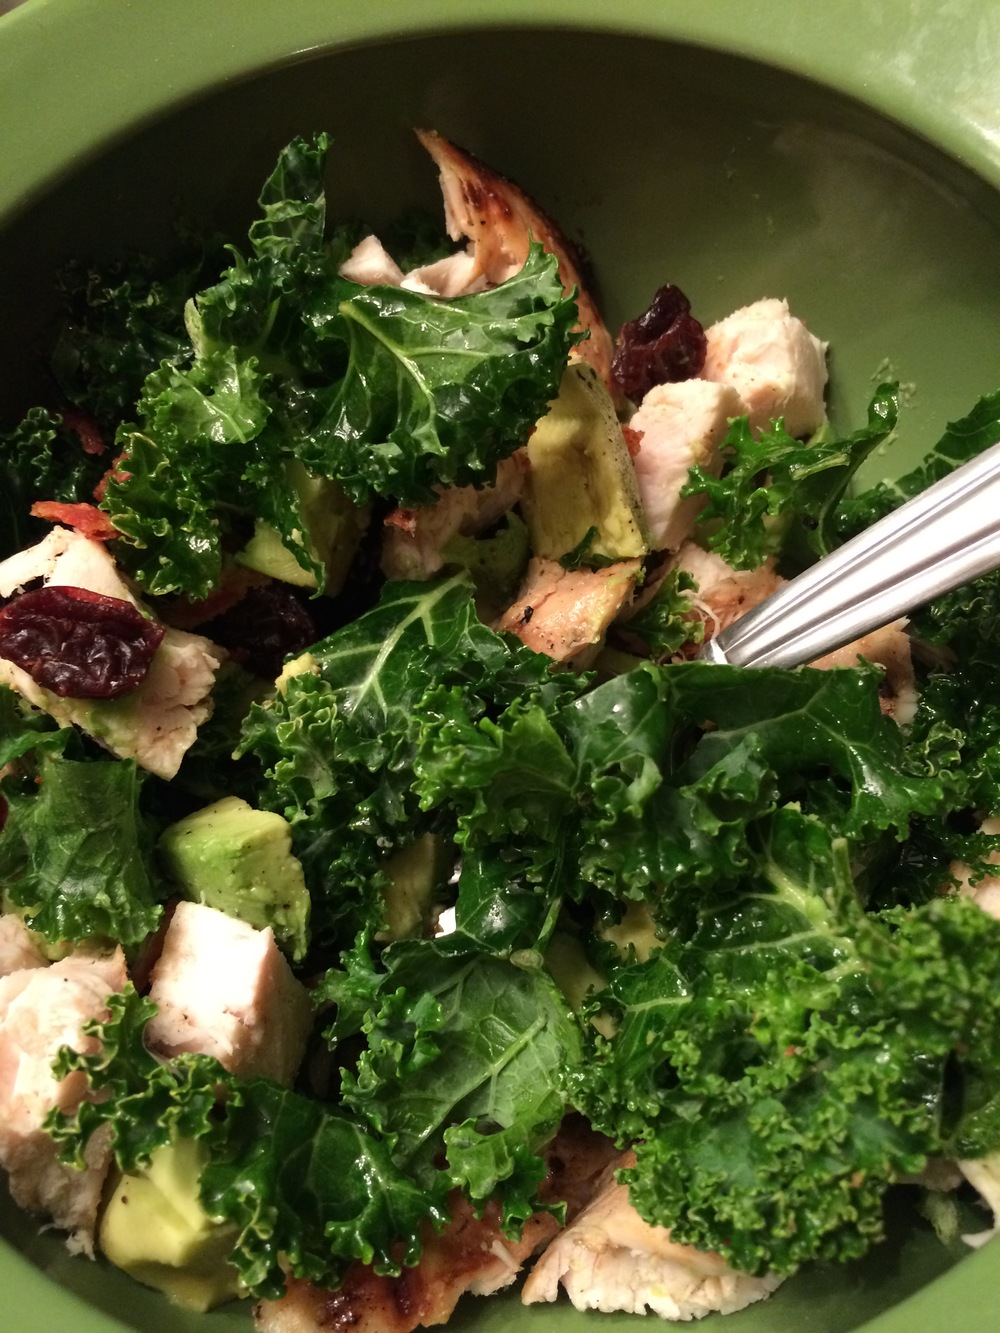 one of my favorite salads: chicken, kale, avocado, dried cranberries. There may or may not be crumbled bacon too...